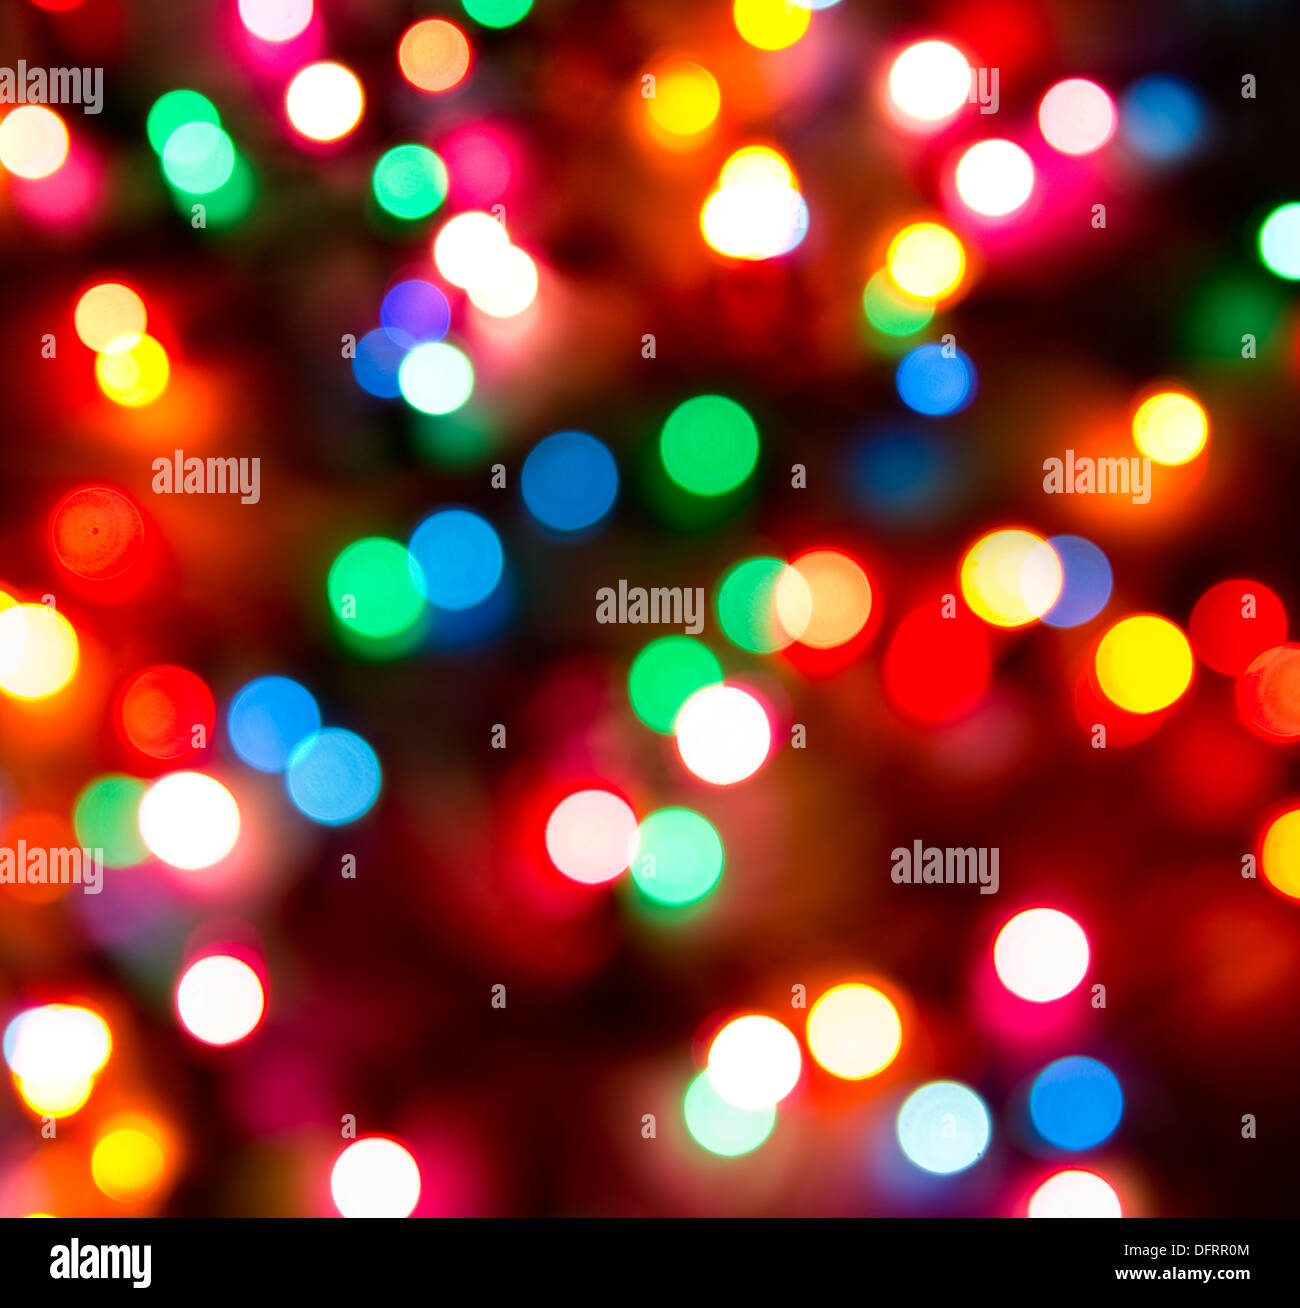 Colorful Christmas Lights Background.Defocused Colorful Christmas Lights Background Stock Photo